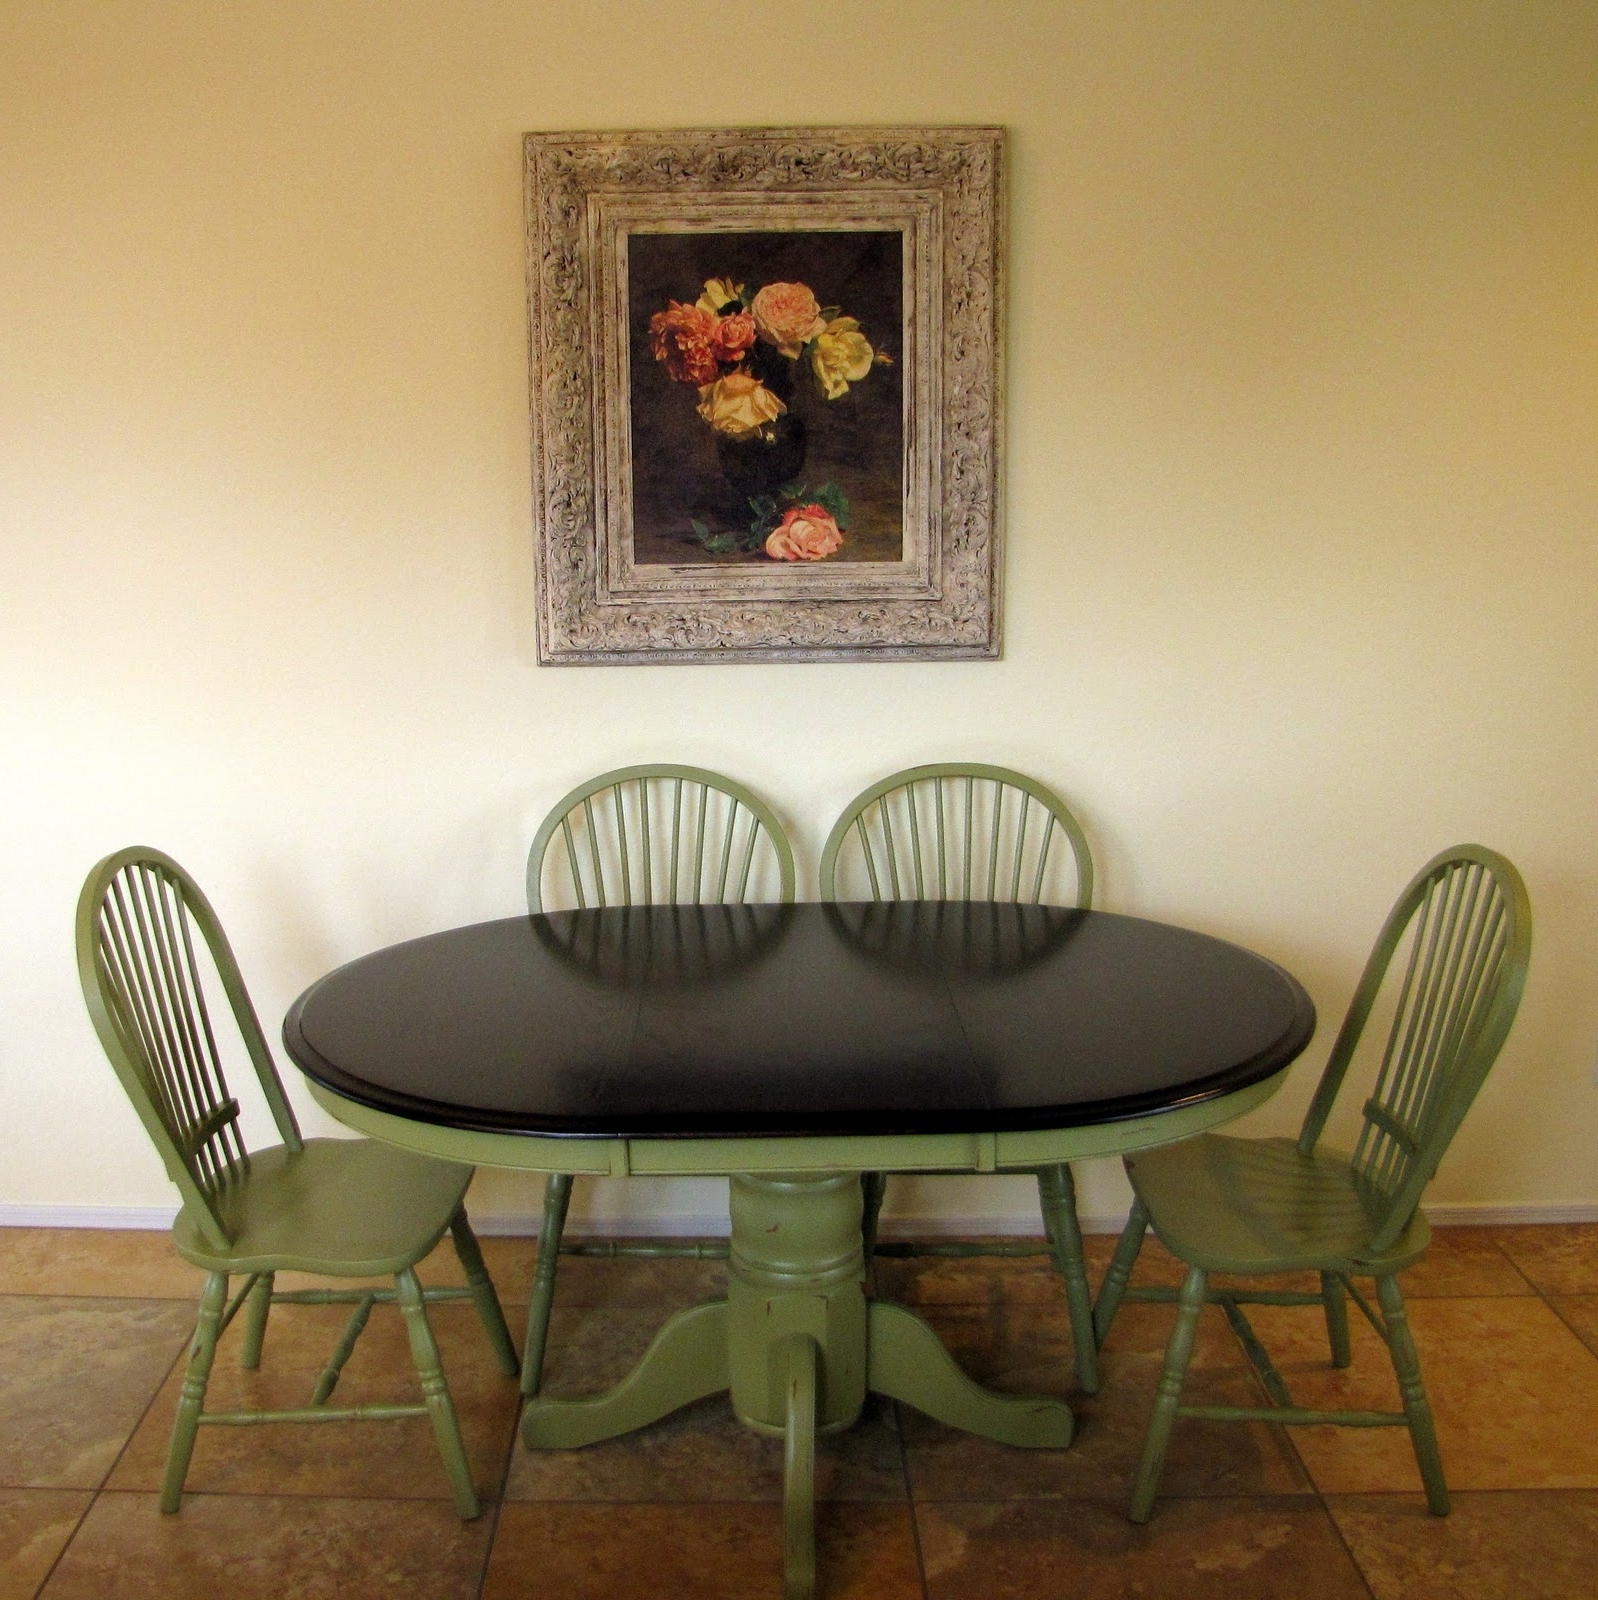 Restoration Furniture: Olive Green Dining Table Throughout Current Green Dining Tables (View 19 of 25)